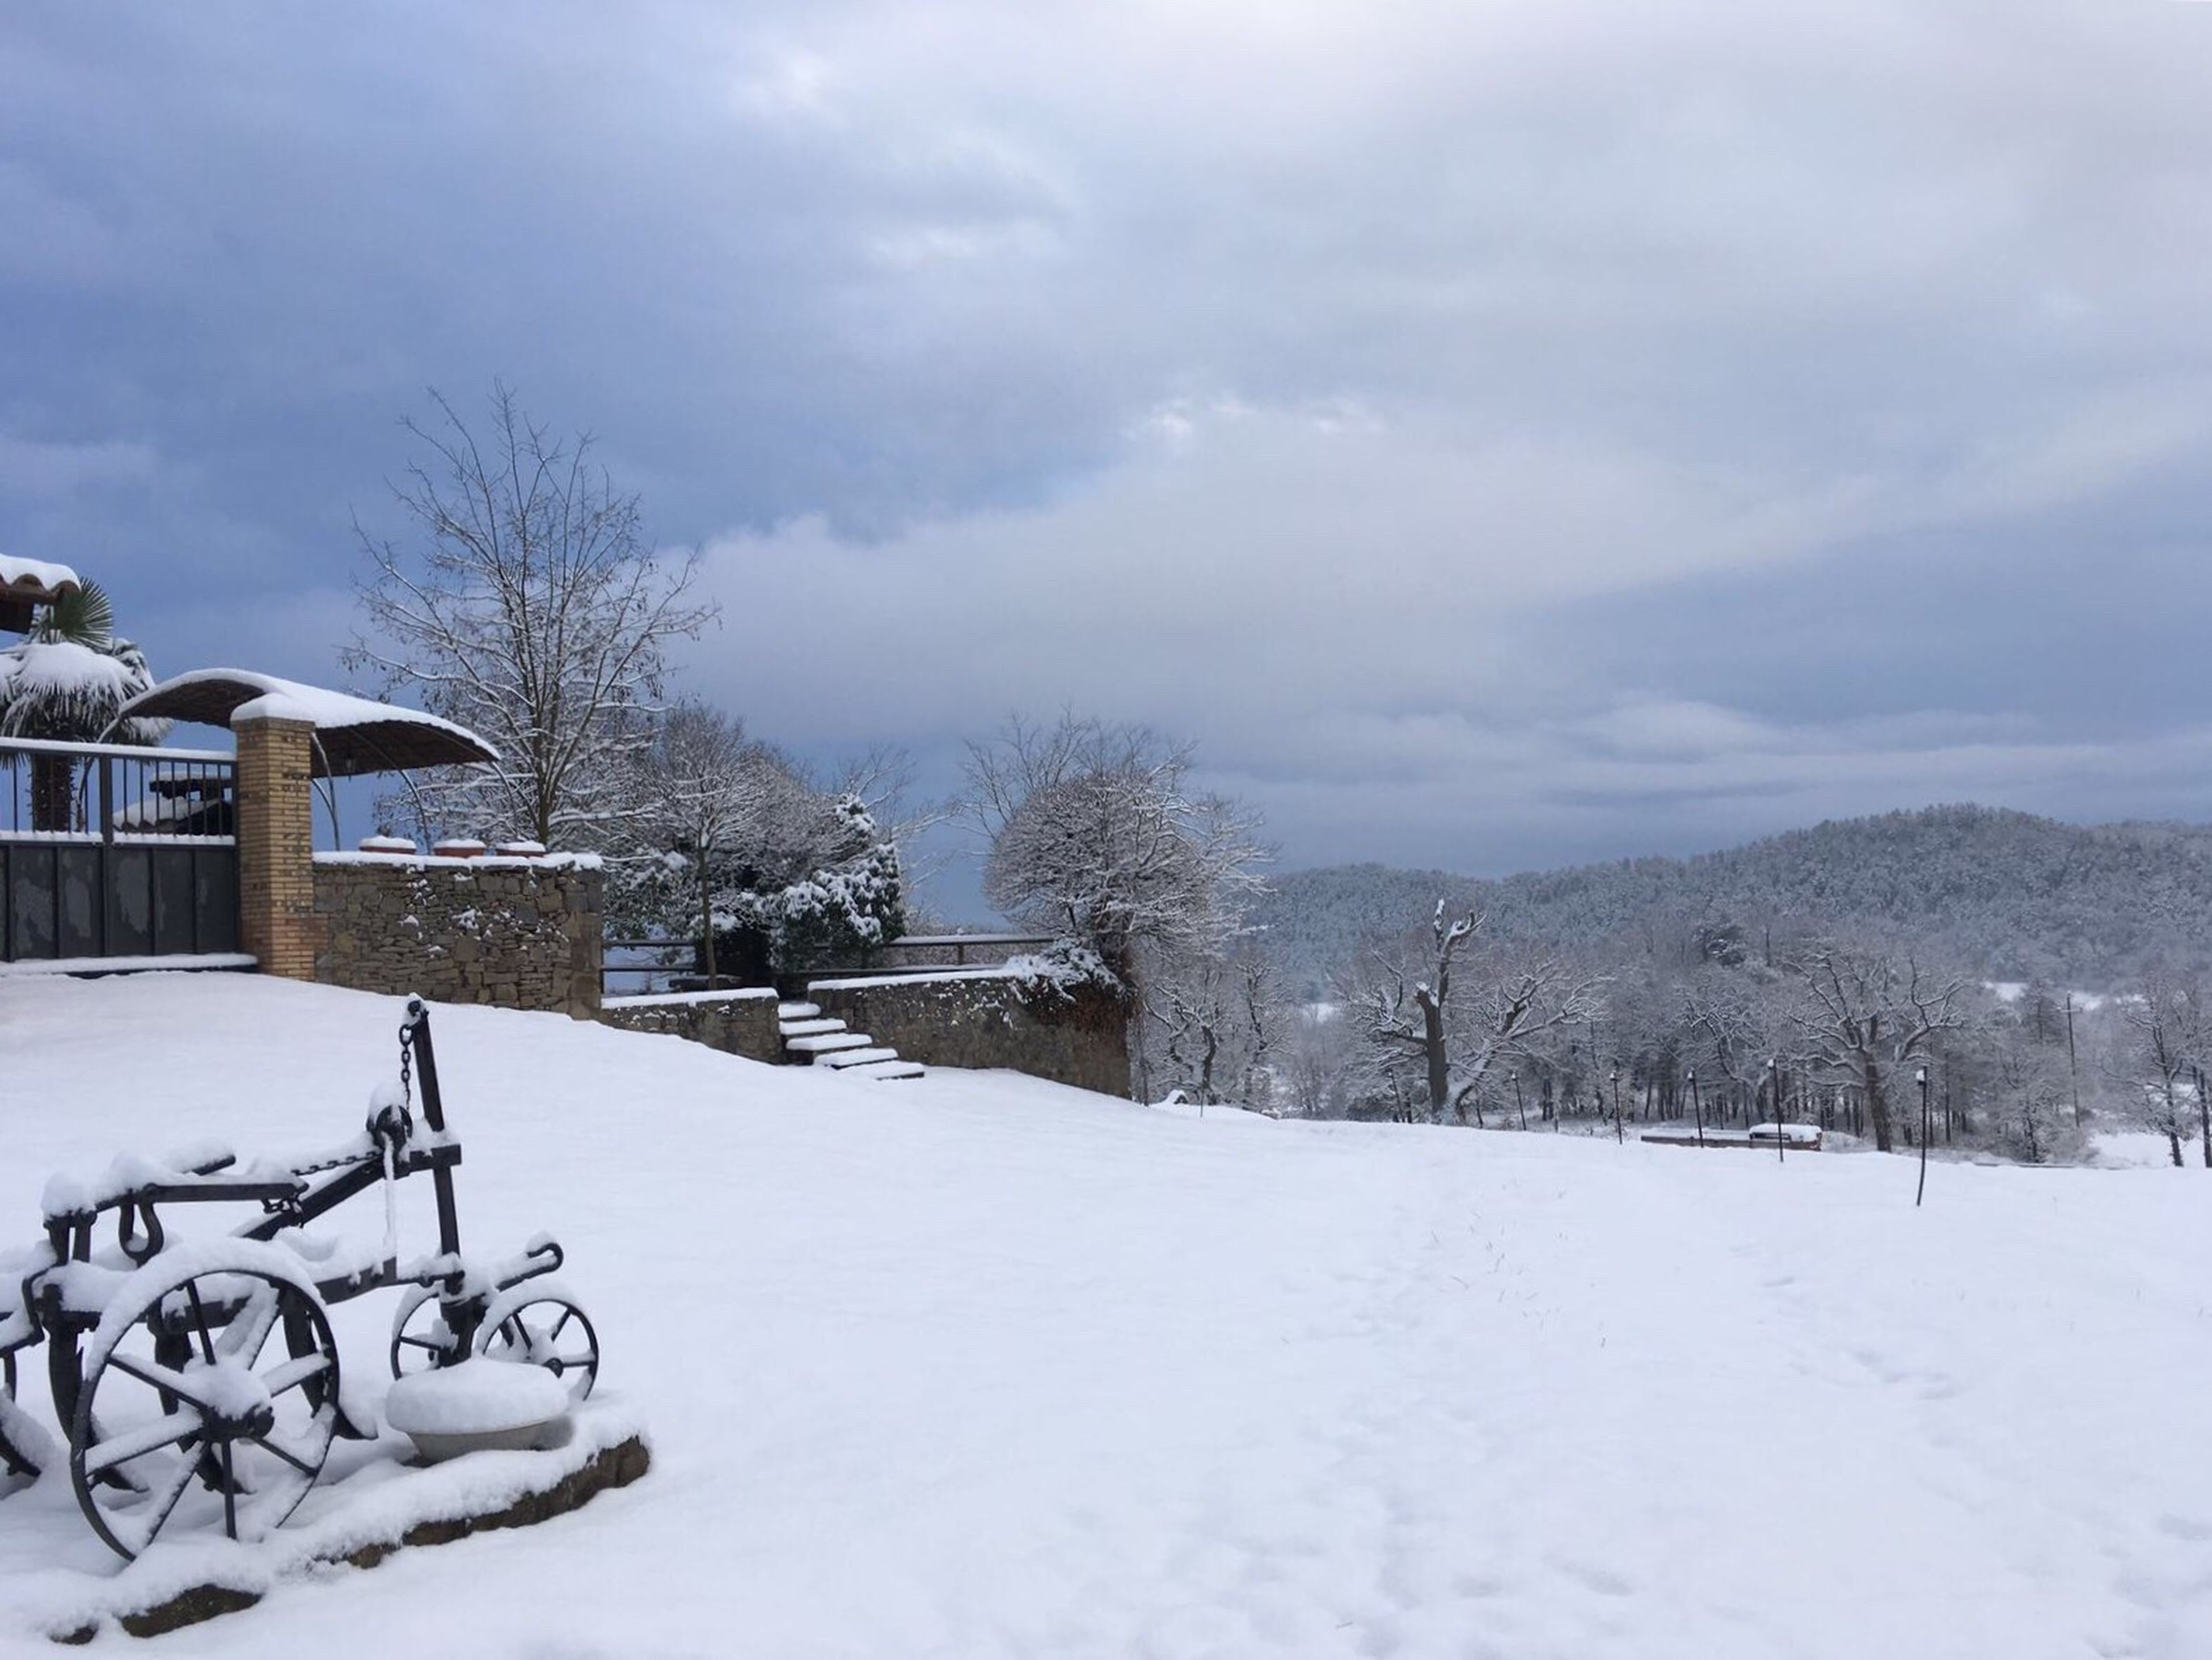 bicycle, transportation, tree, sky, cold temperature, mode of transport, land vehicle, outdoors, snow, stationary, cloud - sky, built structure, day, nature, no people, architecture, winter